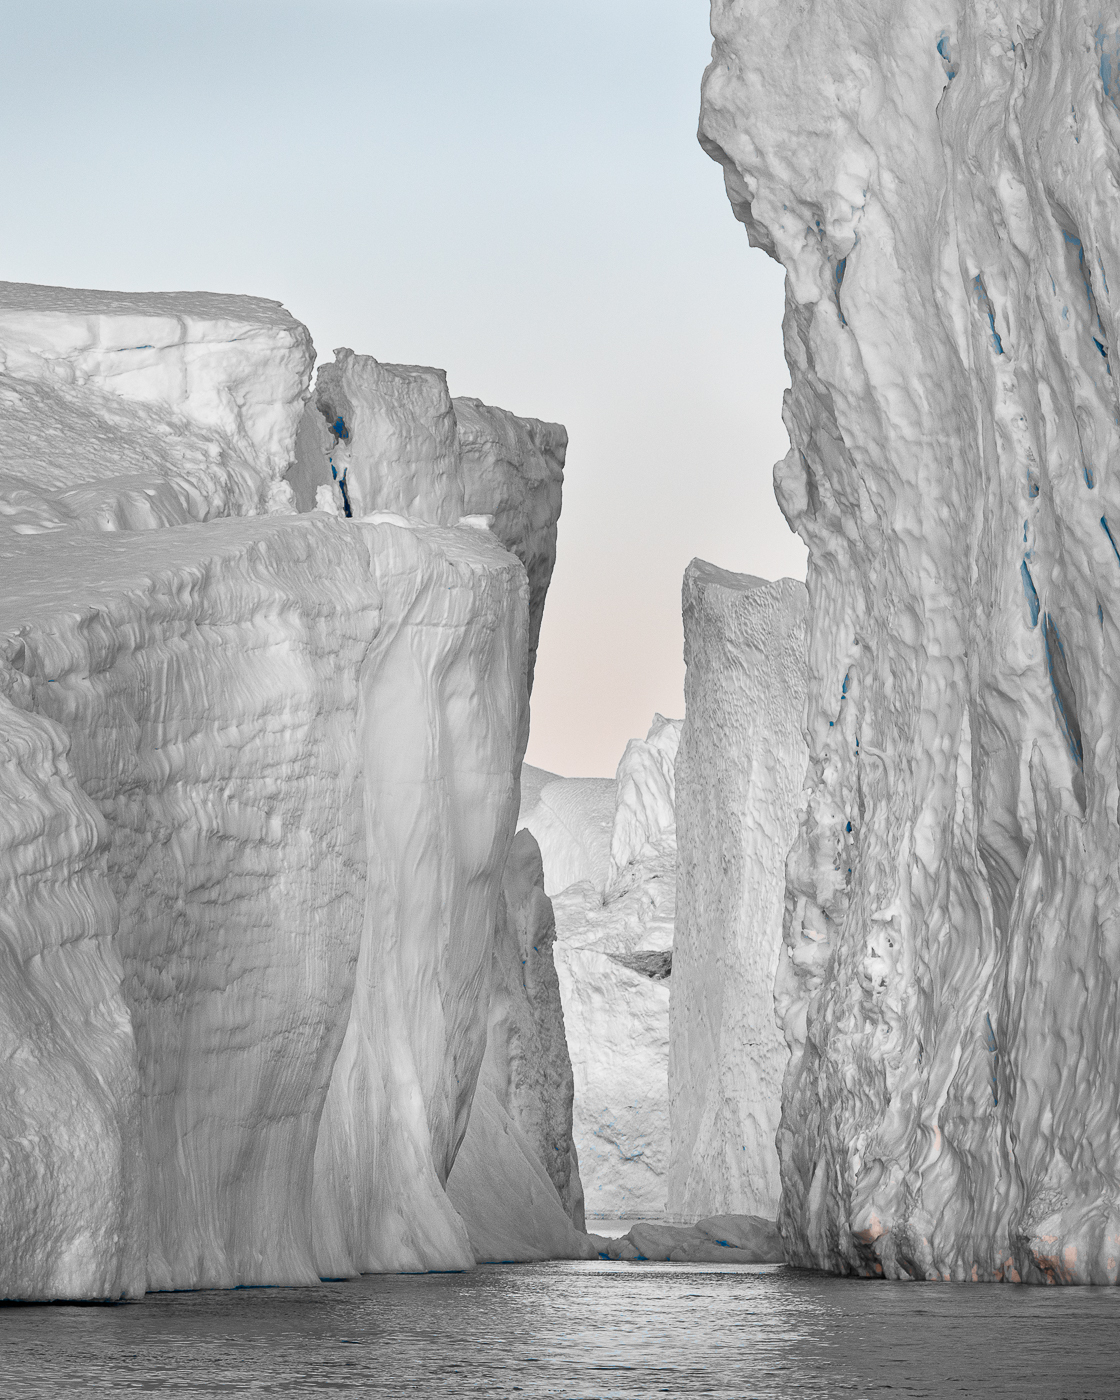 'Canyons of Ice' by Suzanne Trower CPAGB FRPS